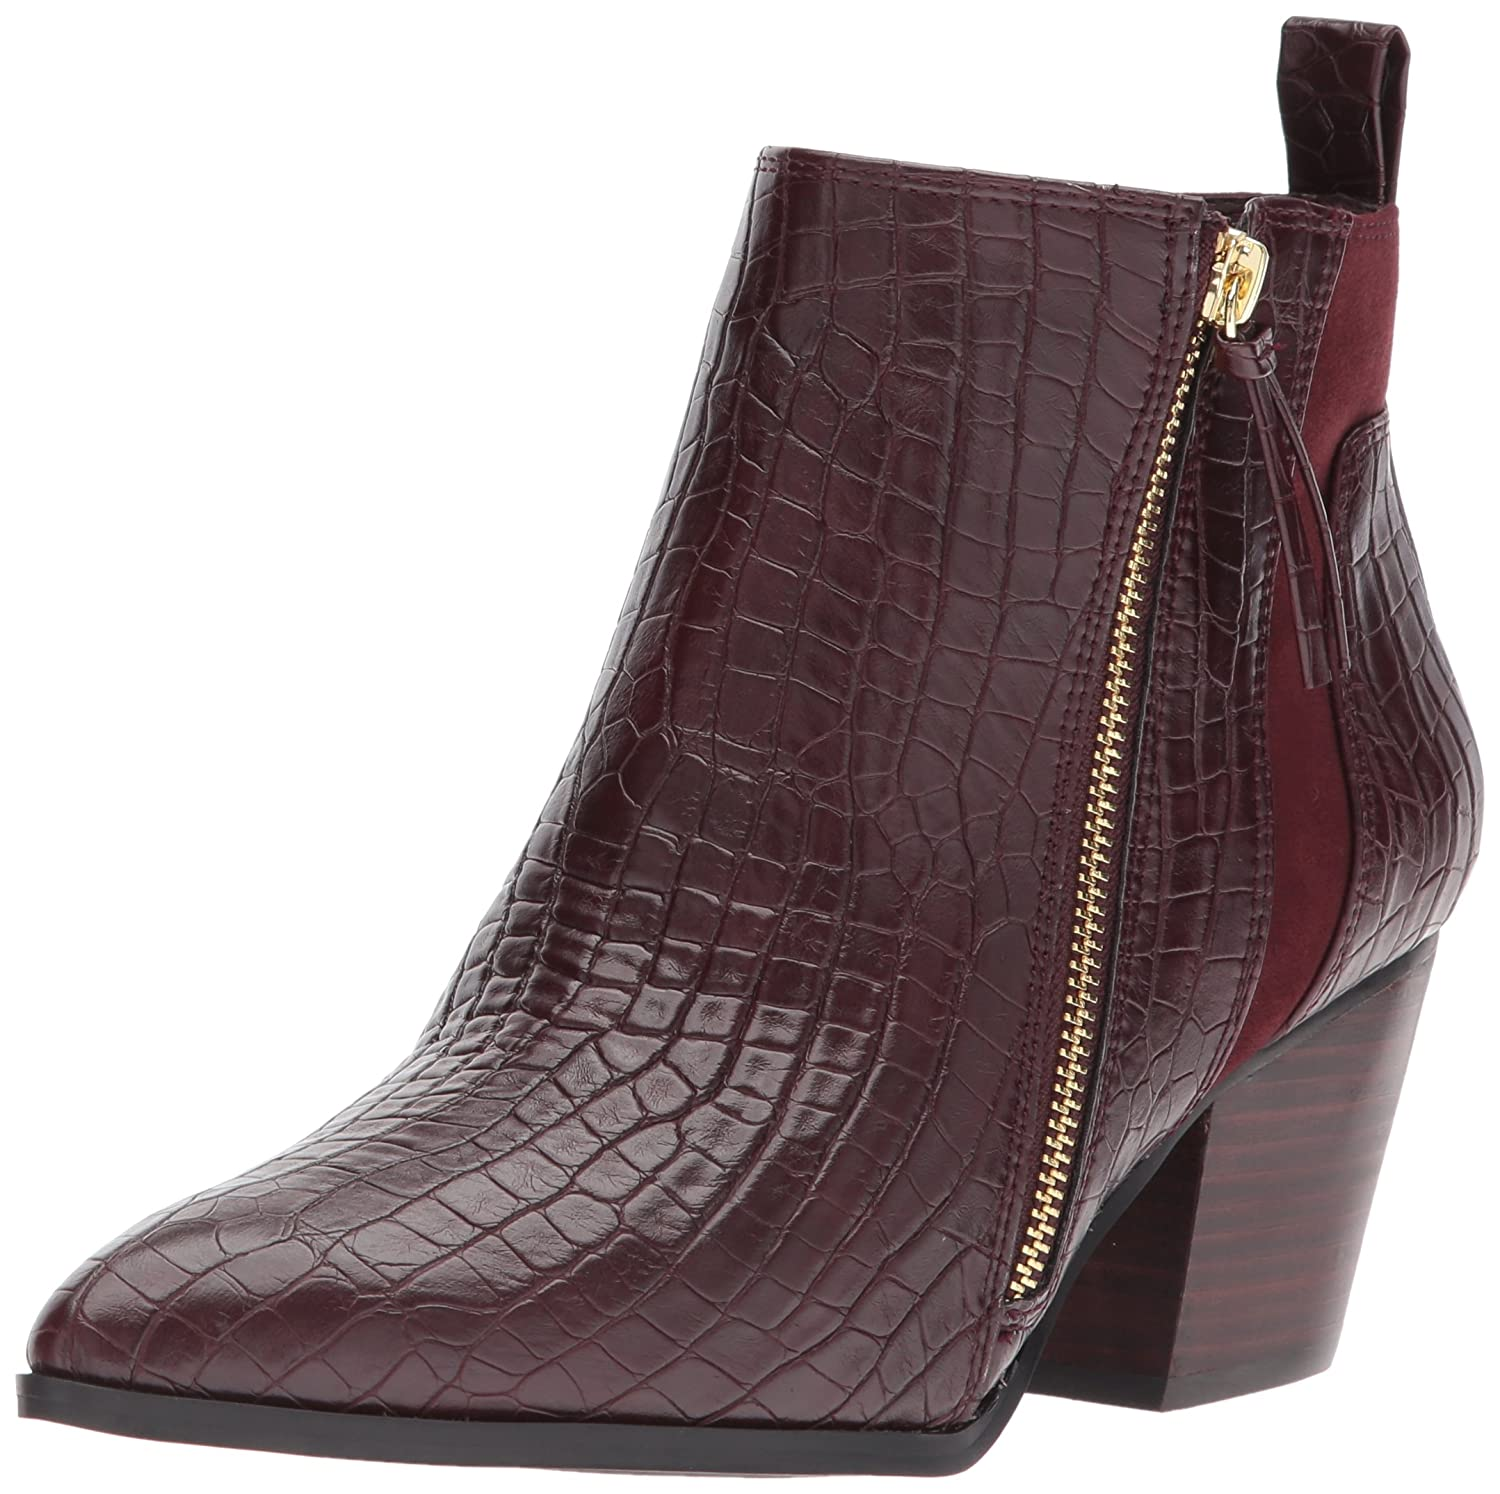 Bella Vita Women's Everest Ii Ankle Bootie B073NQ5S3P 10 2W US|Burgundy Croco